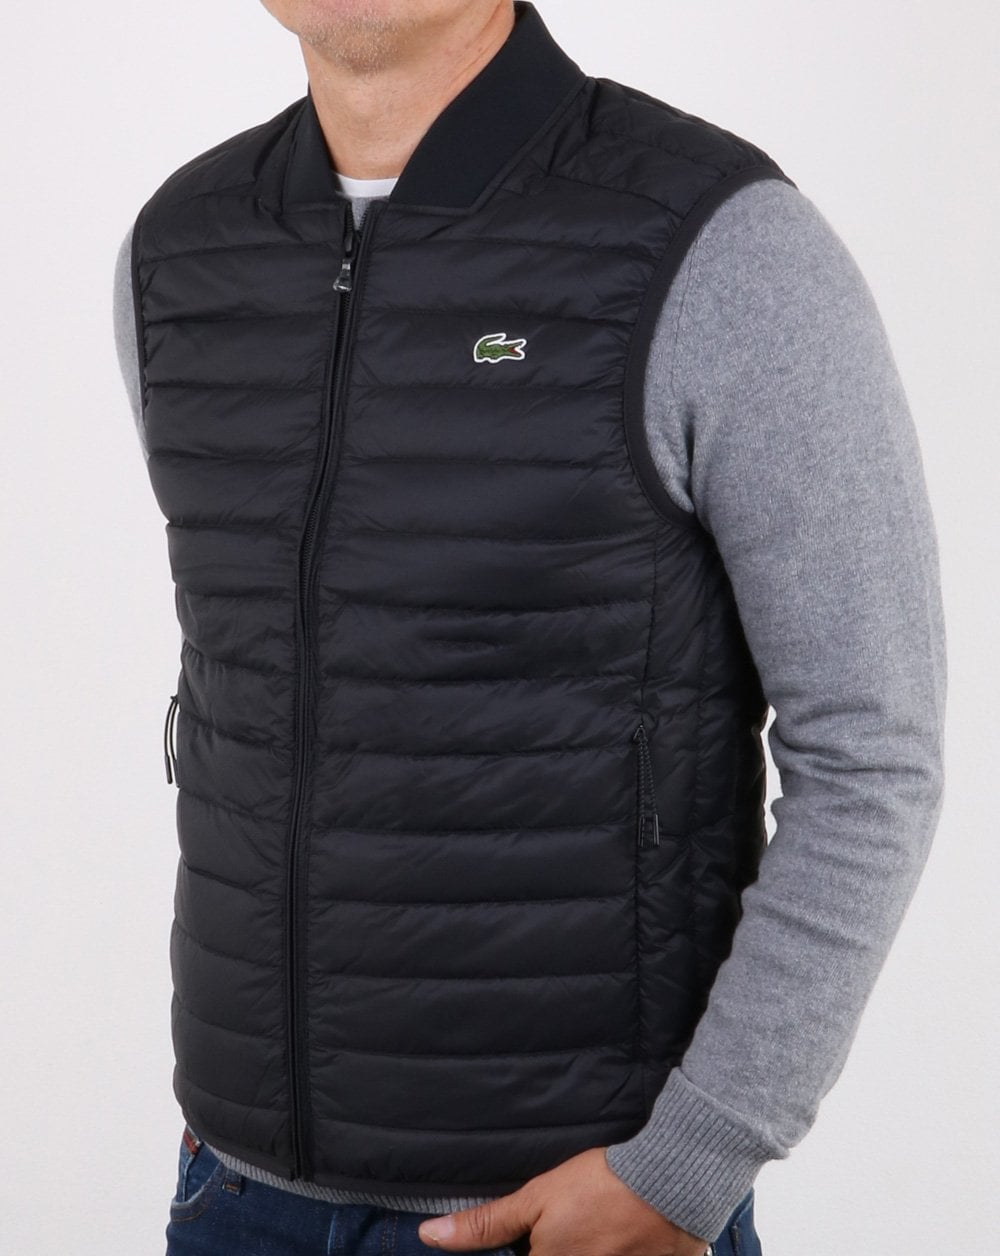 47a6dc50600d Lacoste Lacoste Contrast Lining Quilted Vest Black